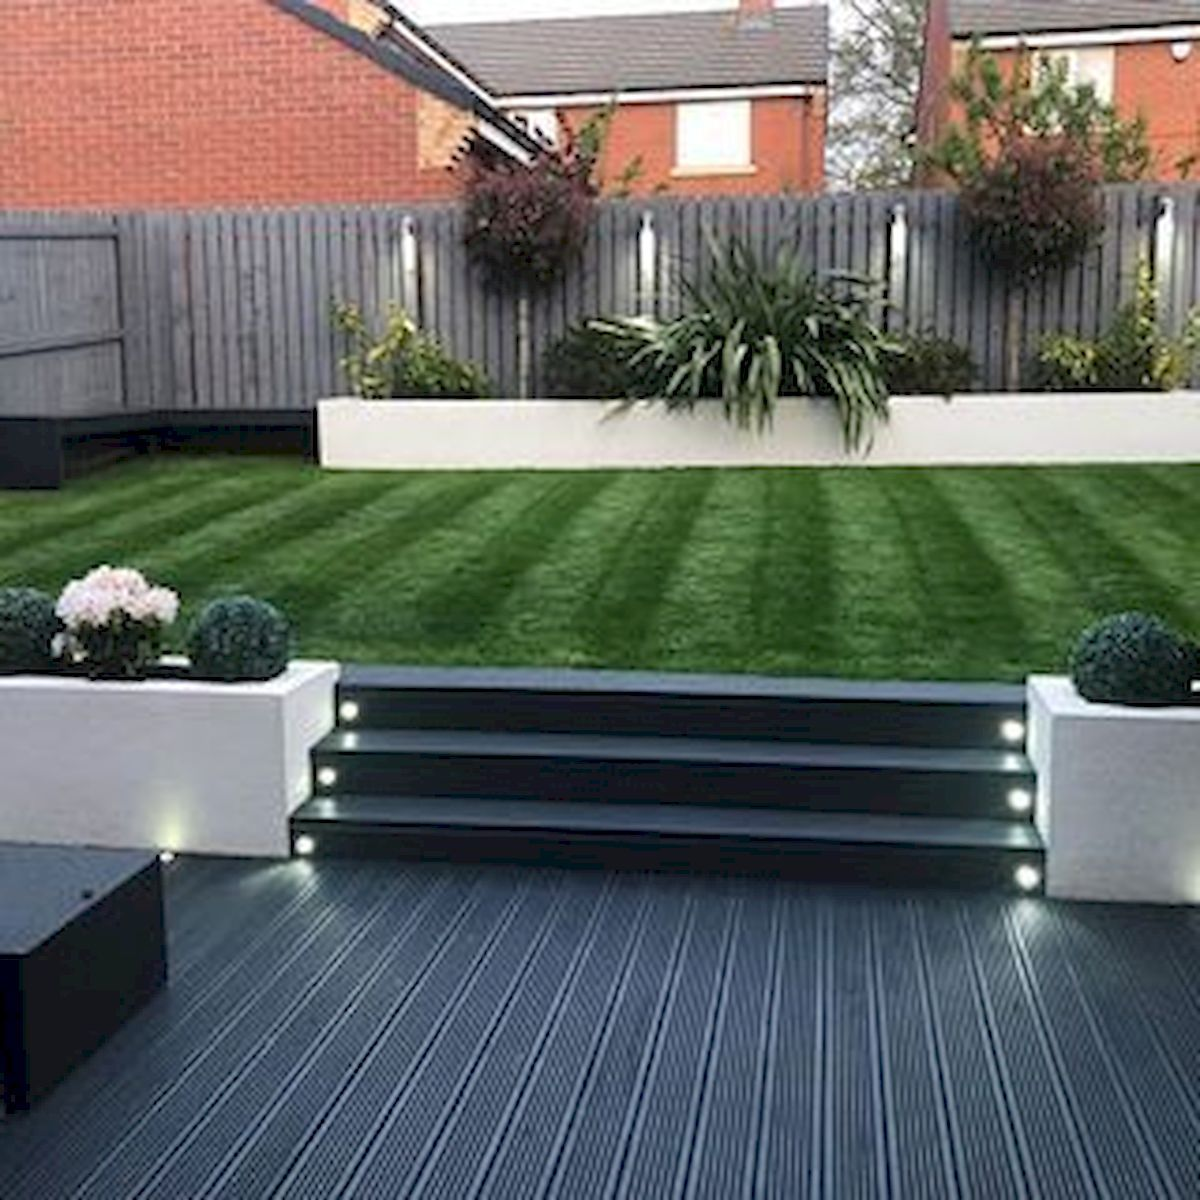 Photo of 40 Fabulous Modern Garden Designs Ideas For Front Yard and Backyard